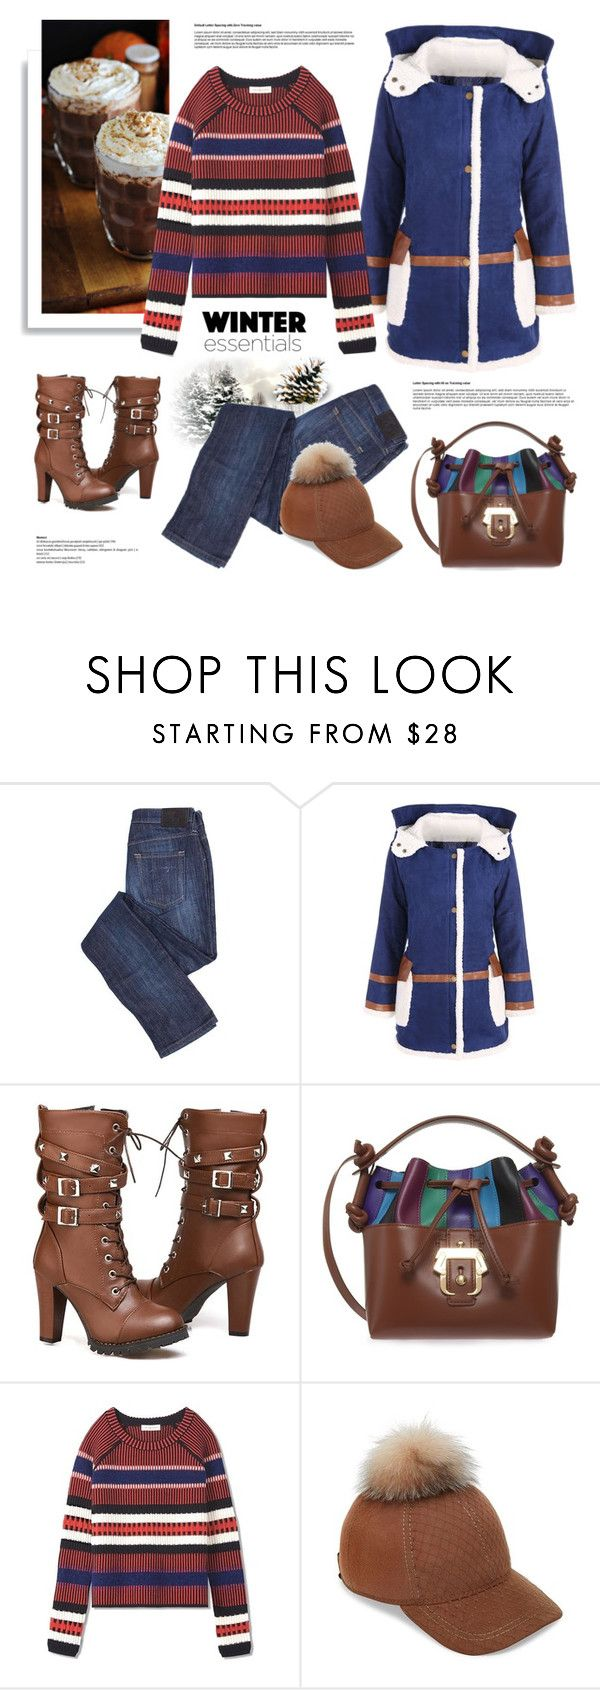 """""""Winter Essentials"""" by maitepascual ❤ liked on Polyvore featuring Paula Cademartori, Tory Burch, House of Lafayette, Winter and winteressentials"""